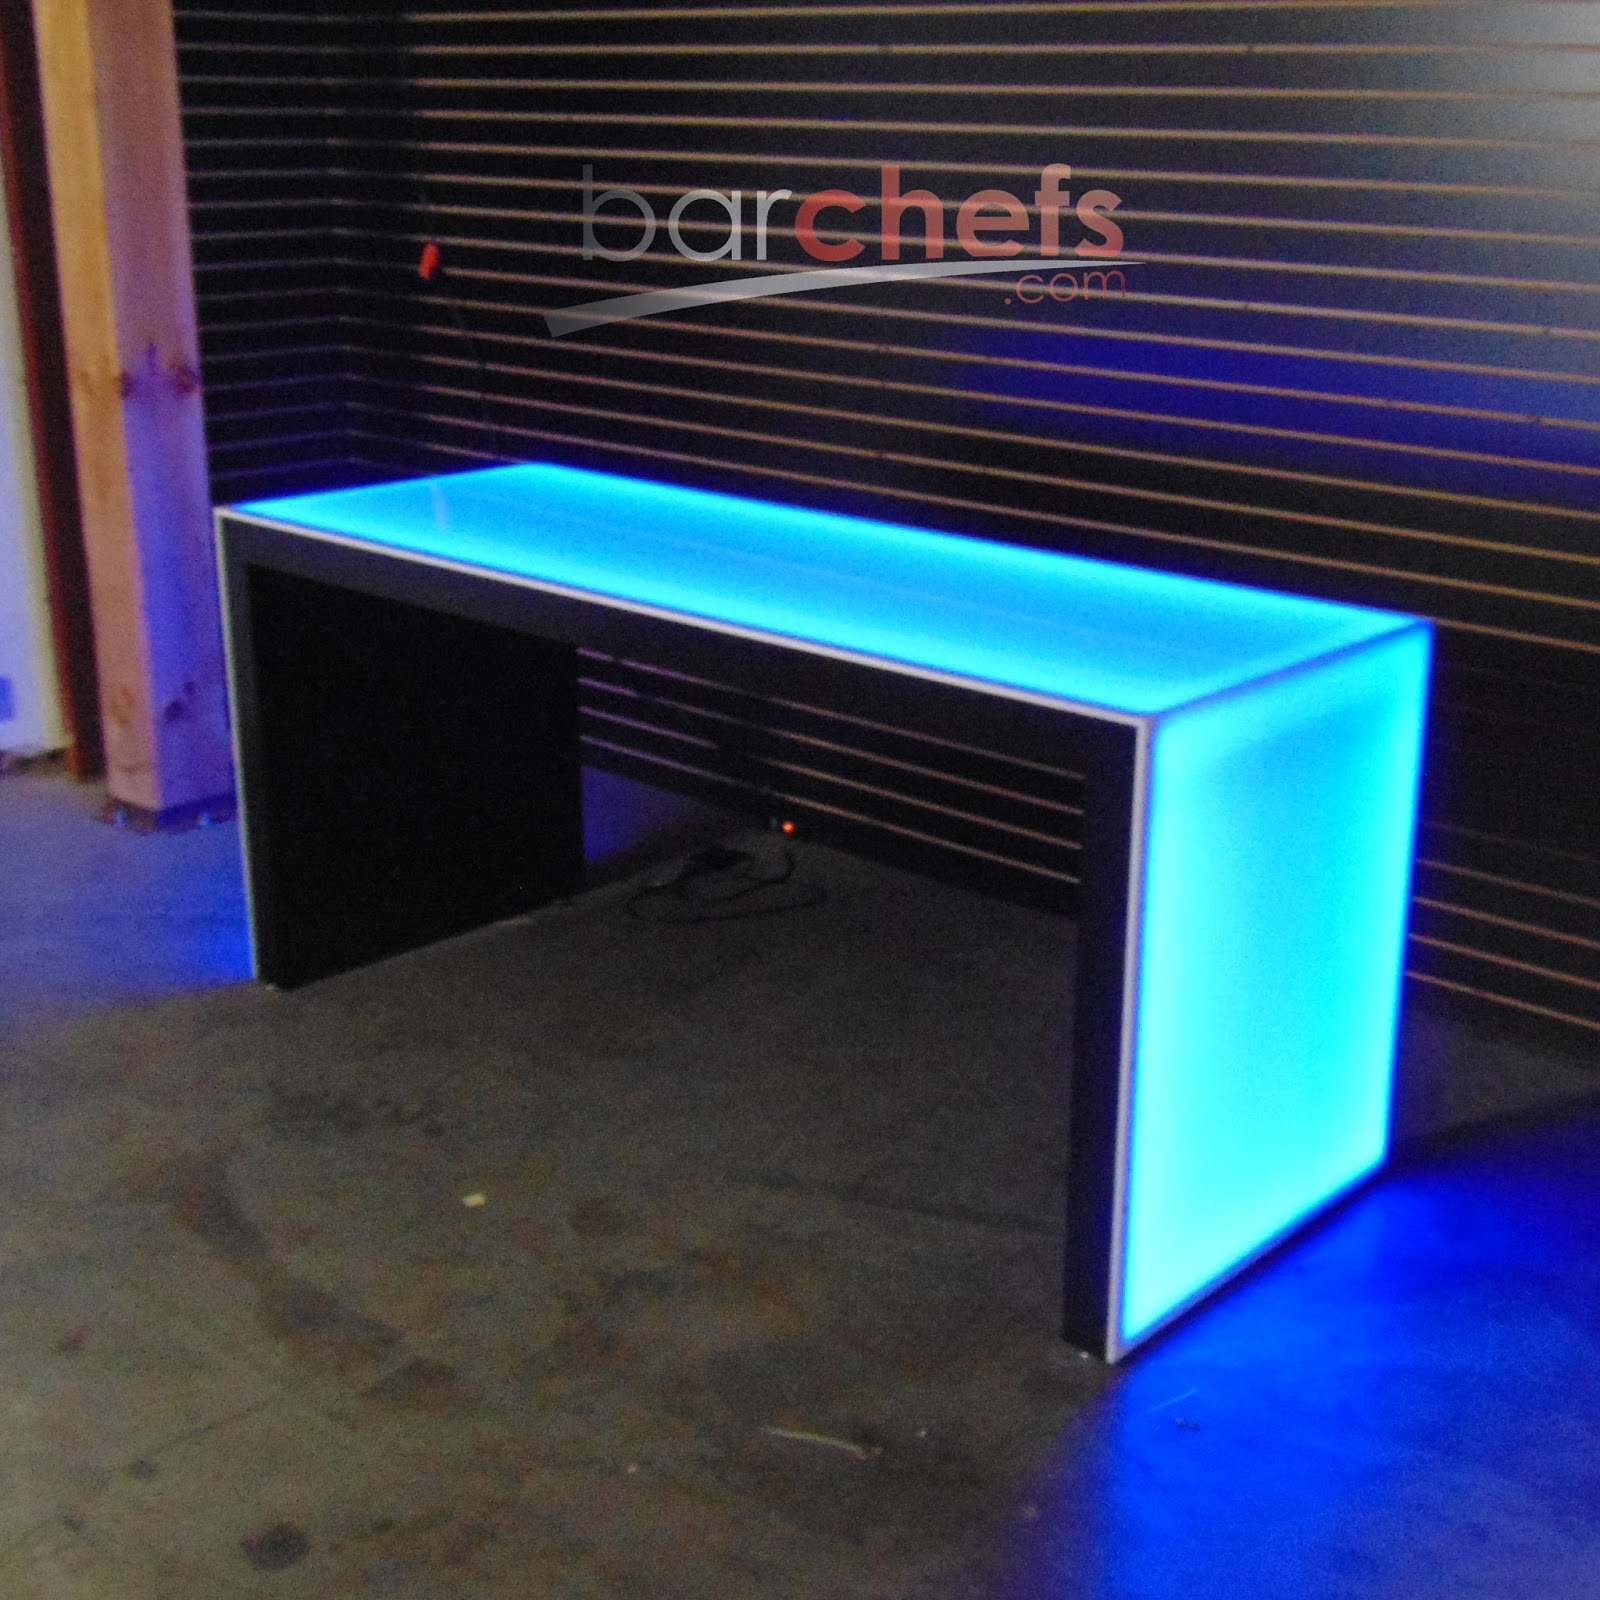 Glow Furniture Barchefs Glowing Furniture And Event Equipment Blog